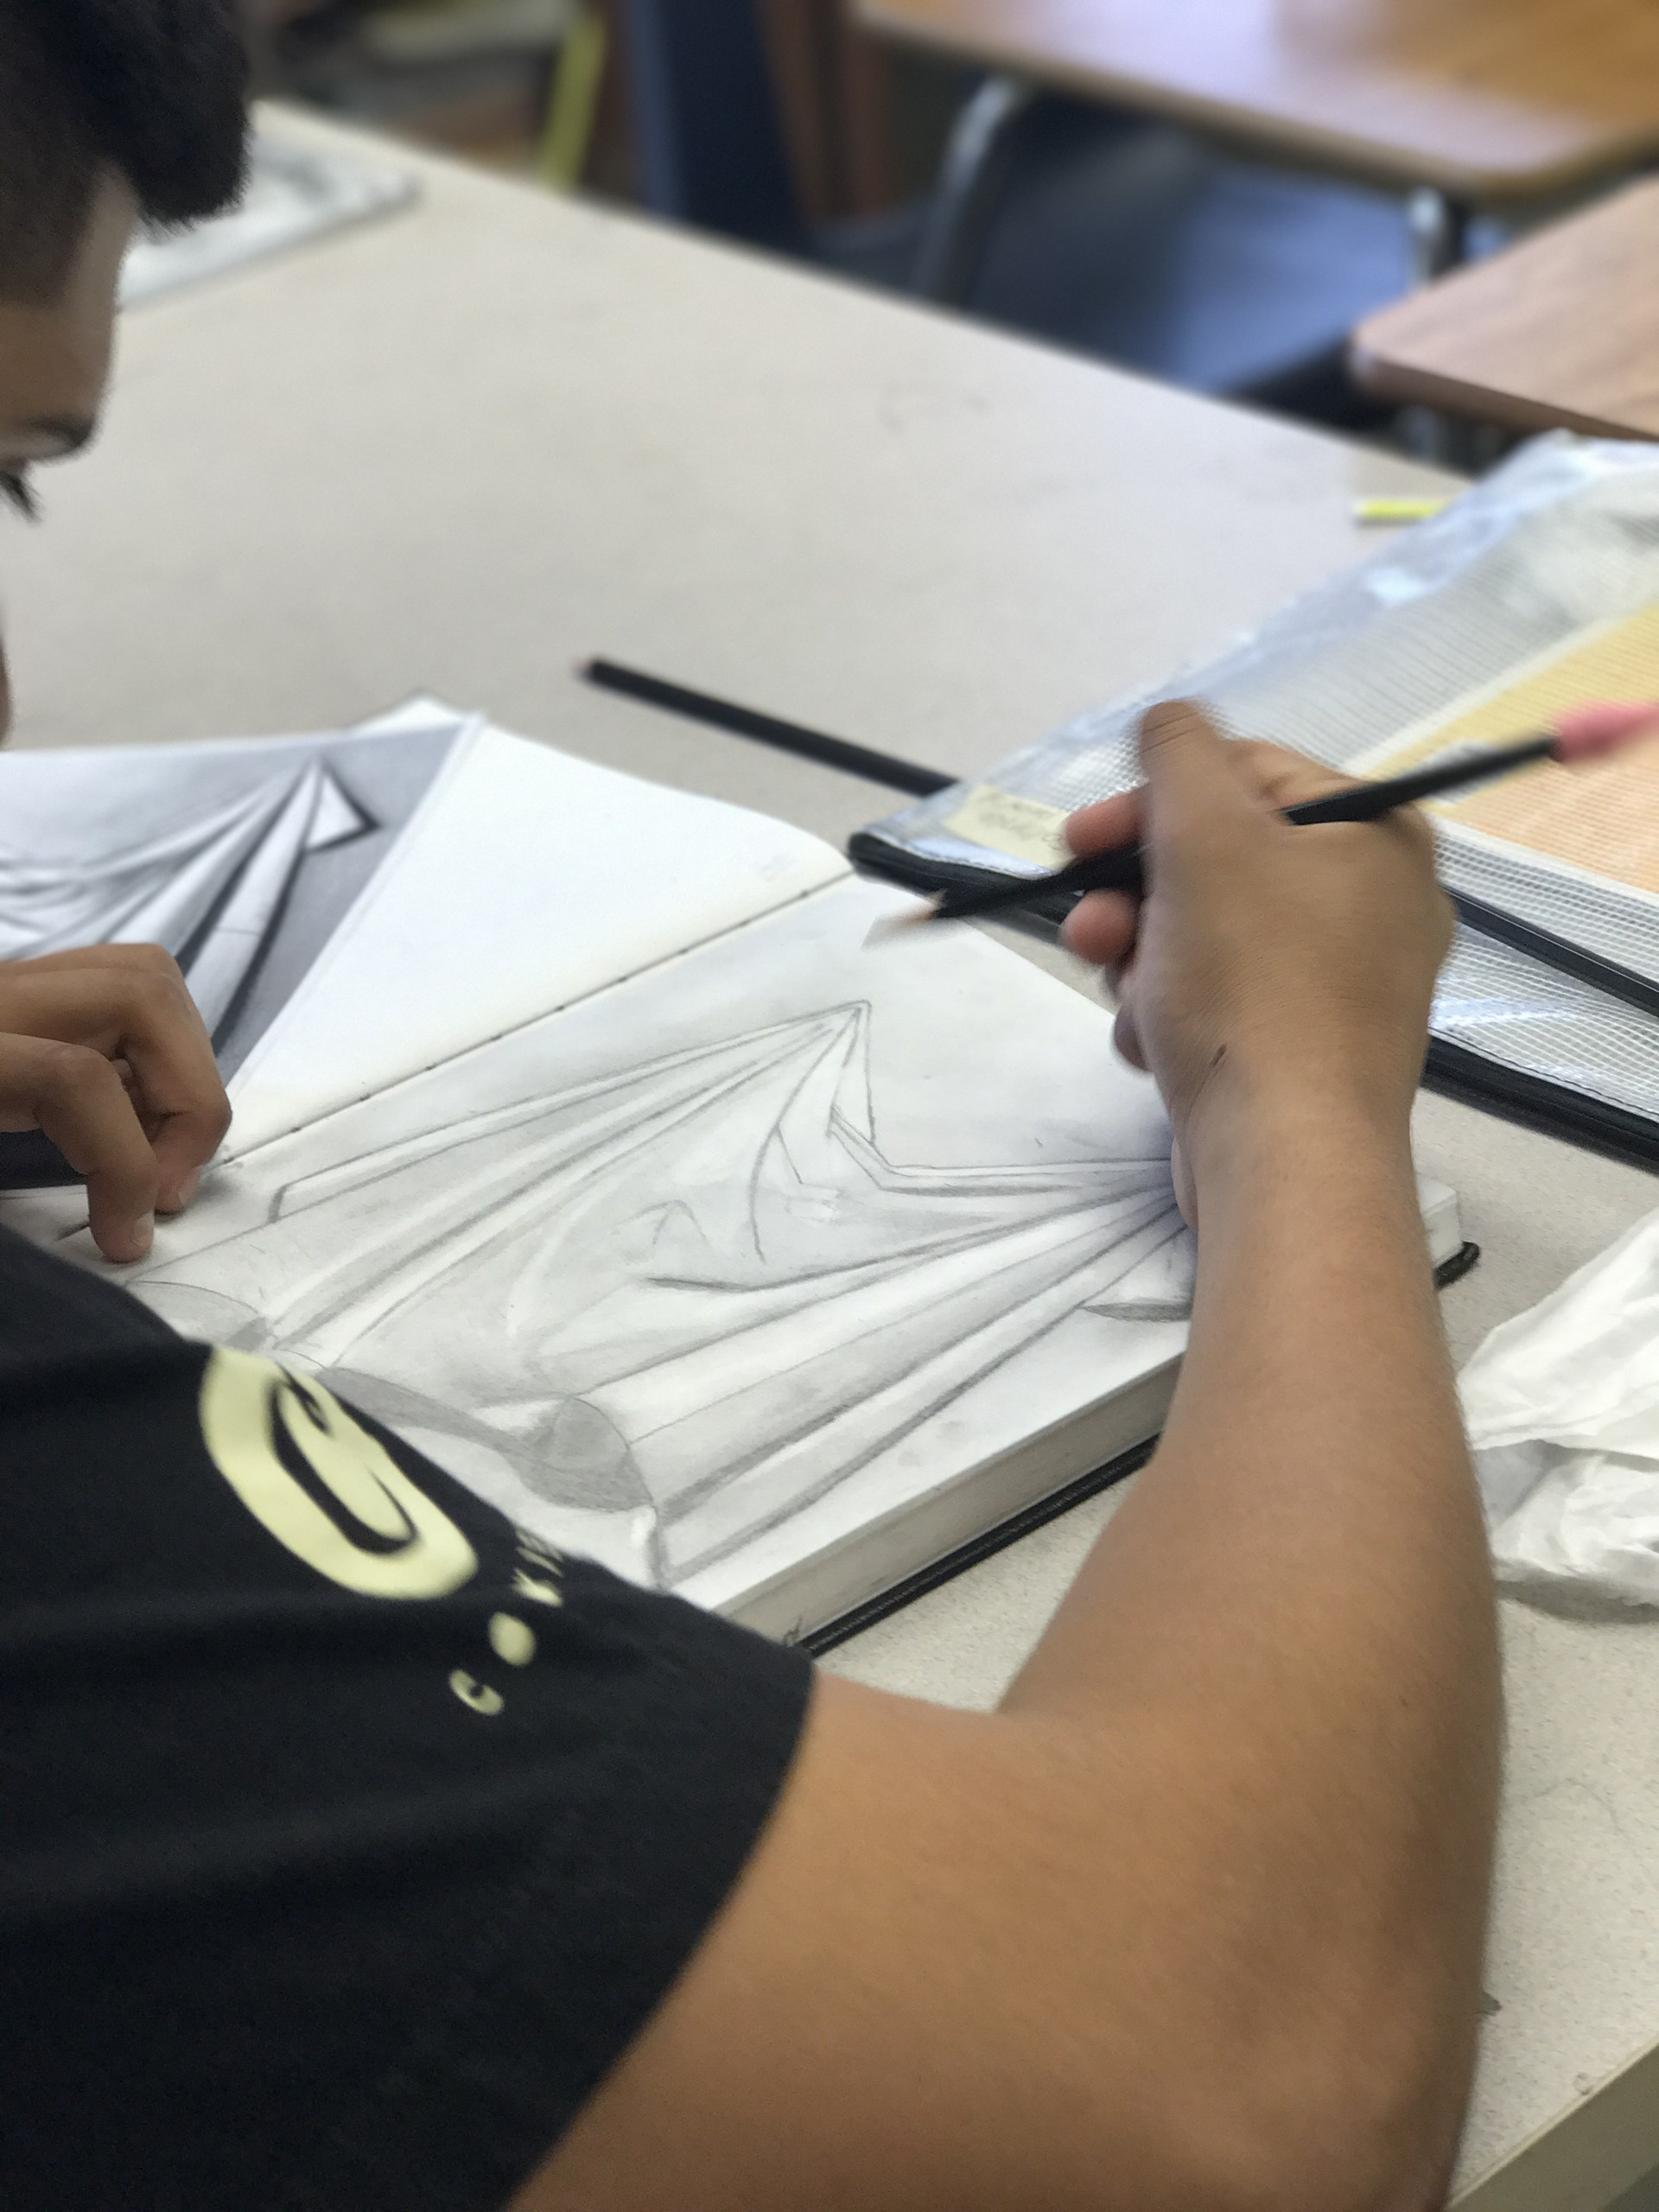 Student studies the folds and shading of a fabric drawing